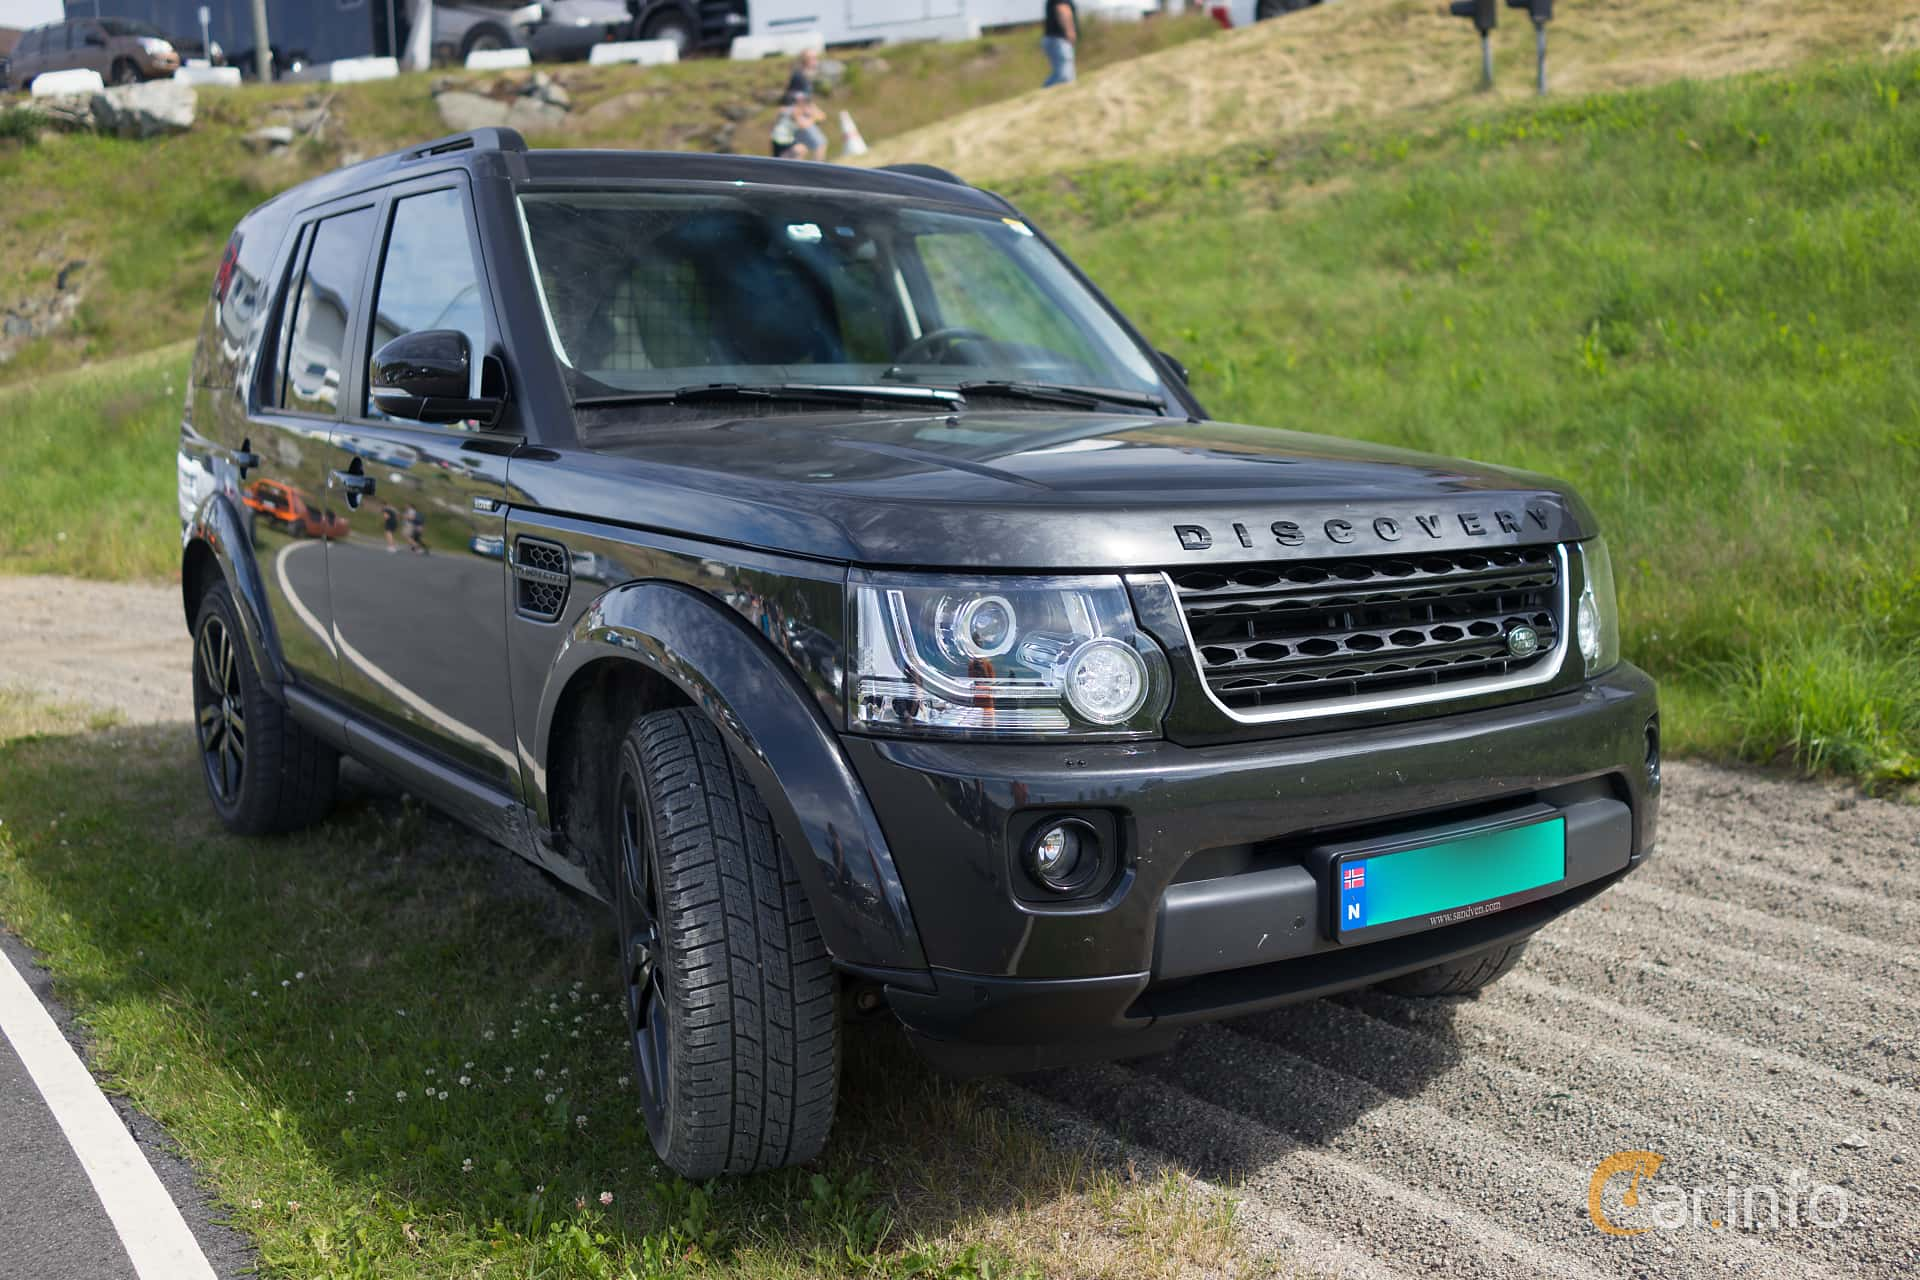 commons file land discovery landrover rover wiki front wikimedia bumper